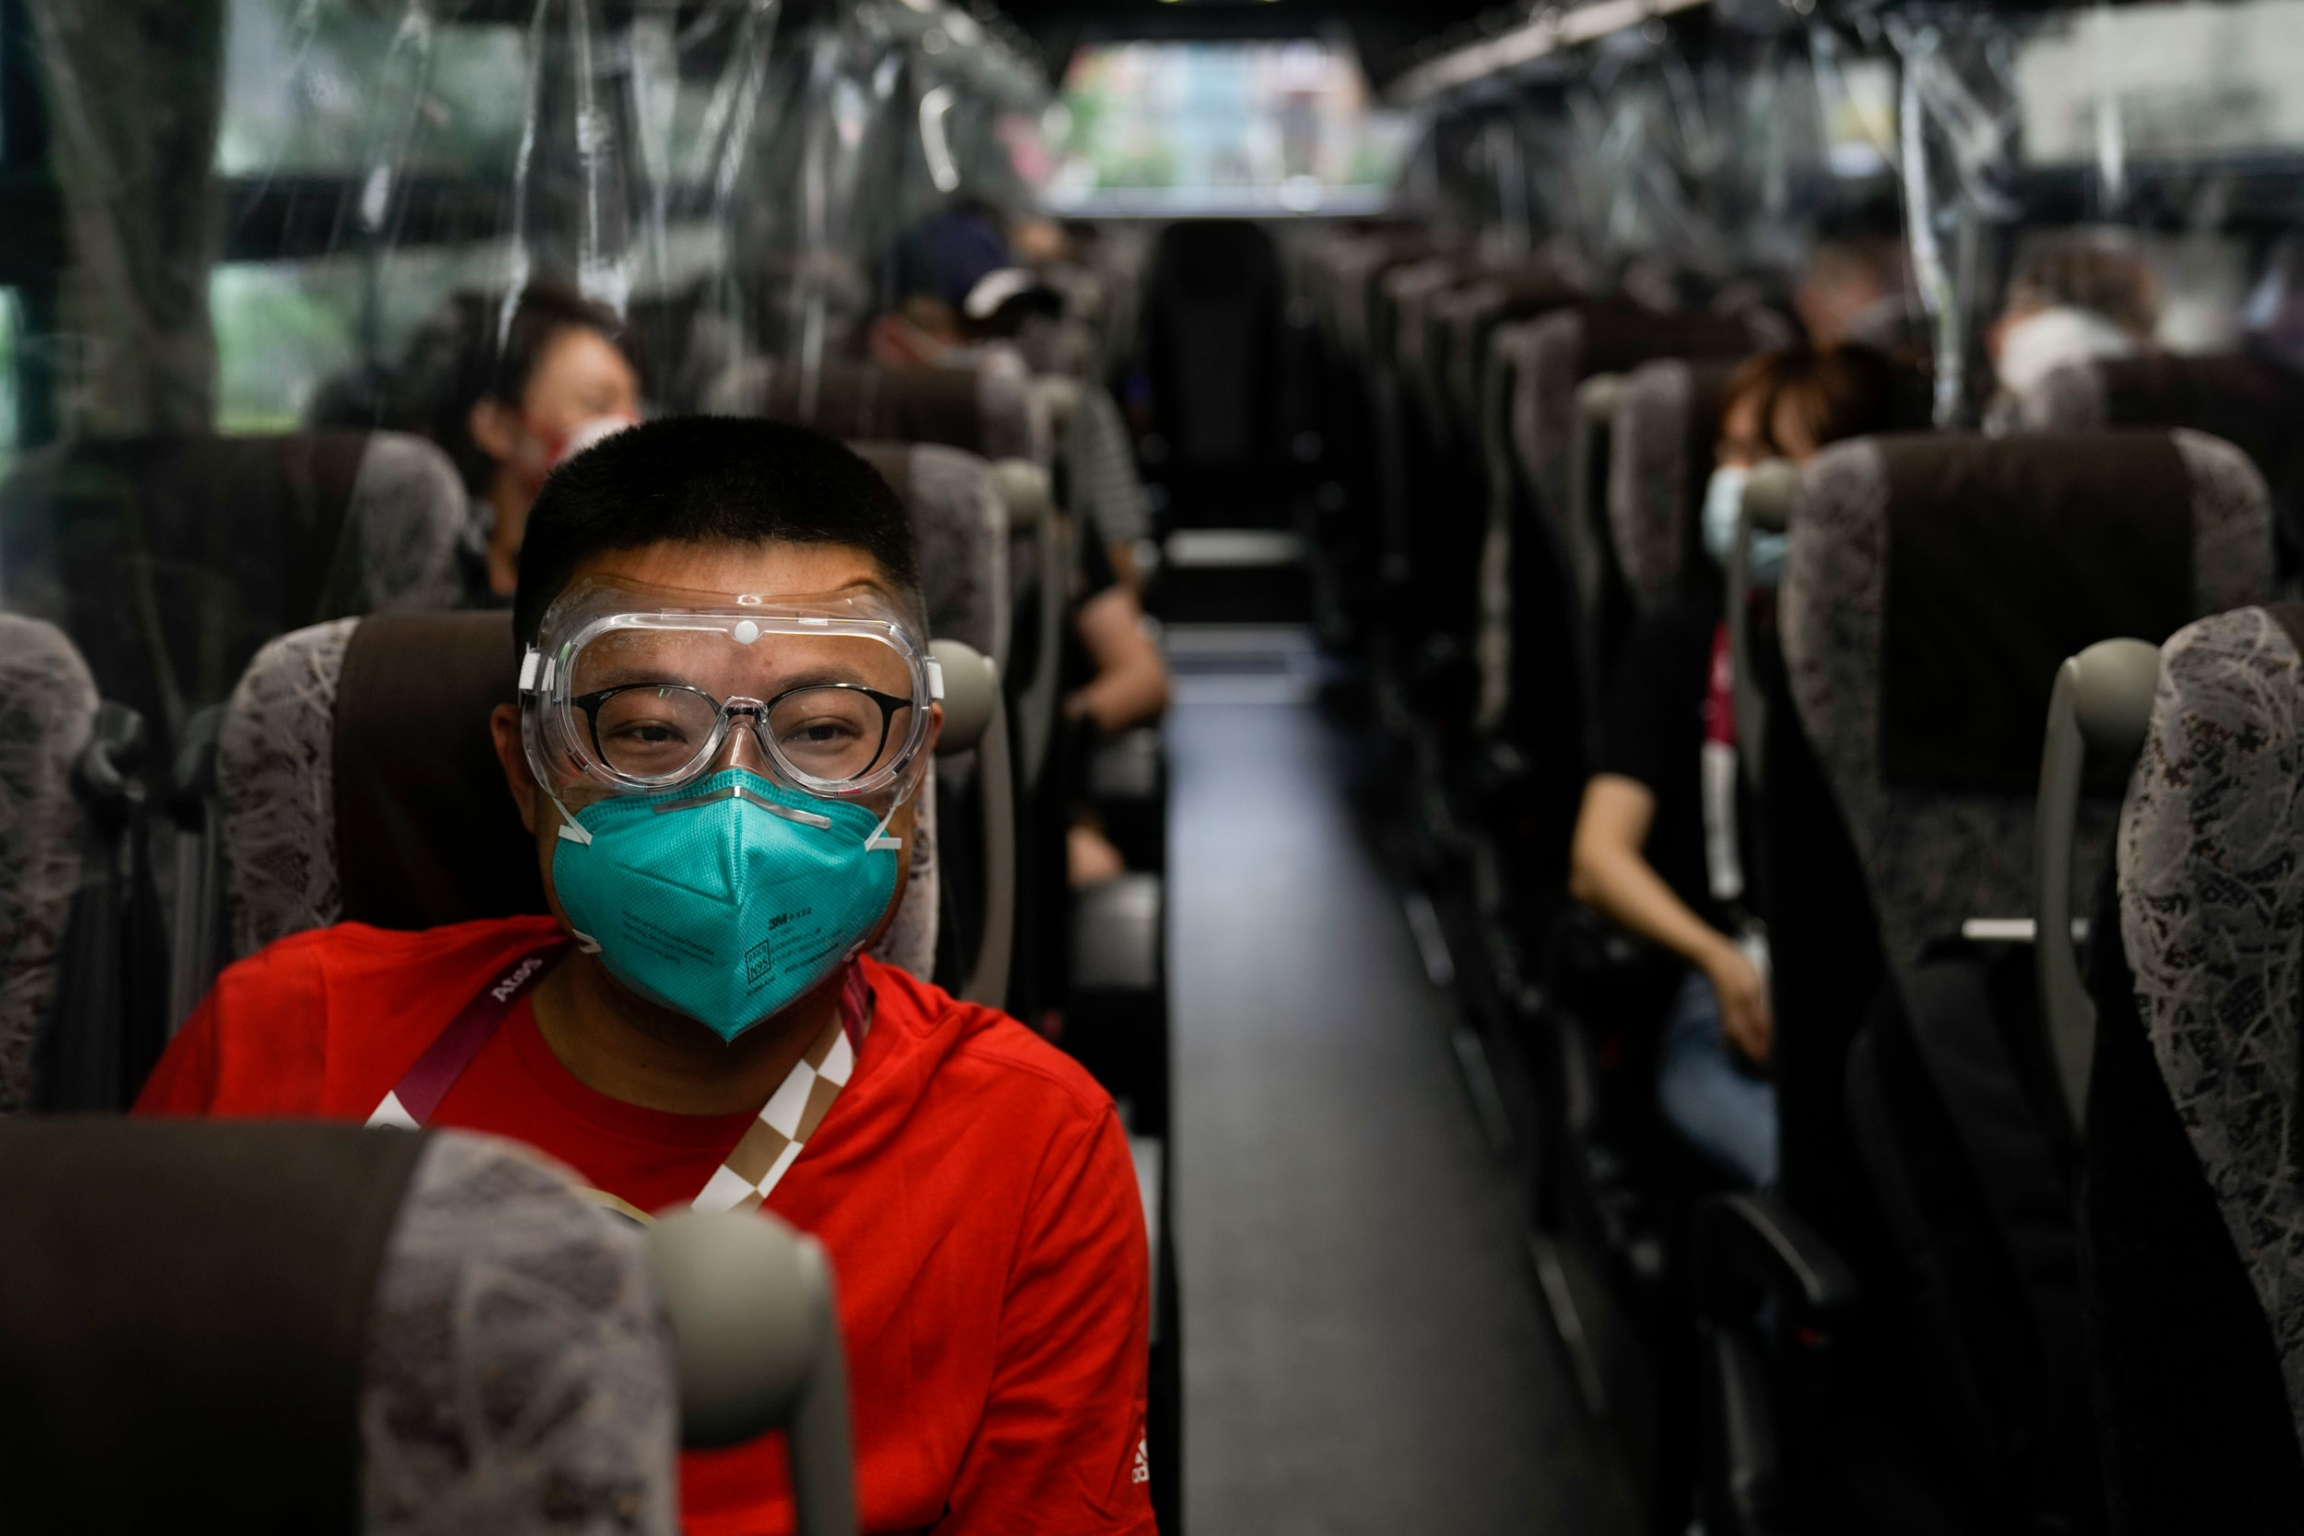 A man is shown wearing a red shirt, face mask and clear goggles while riding a bus.